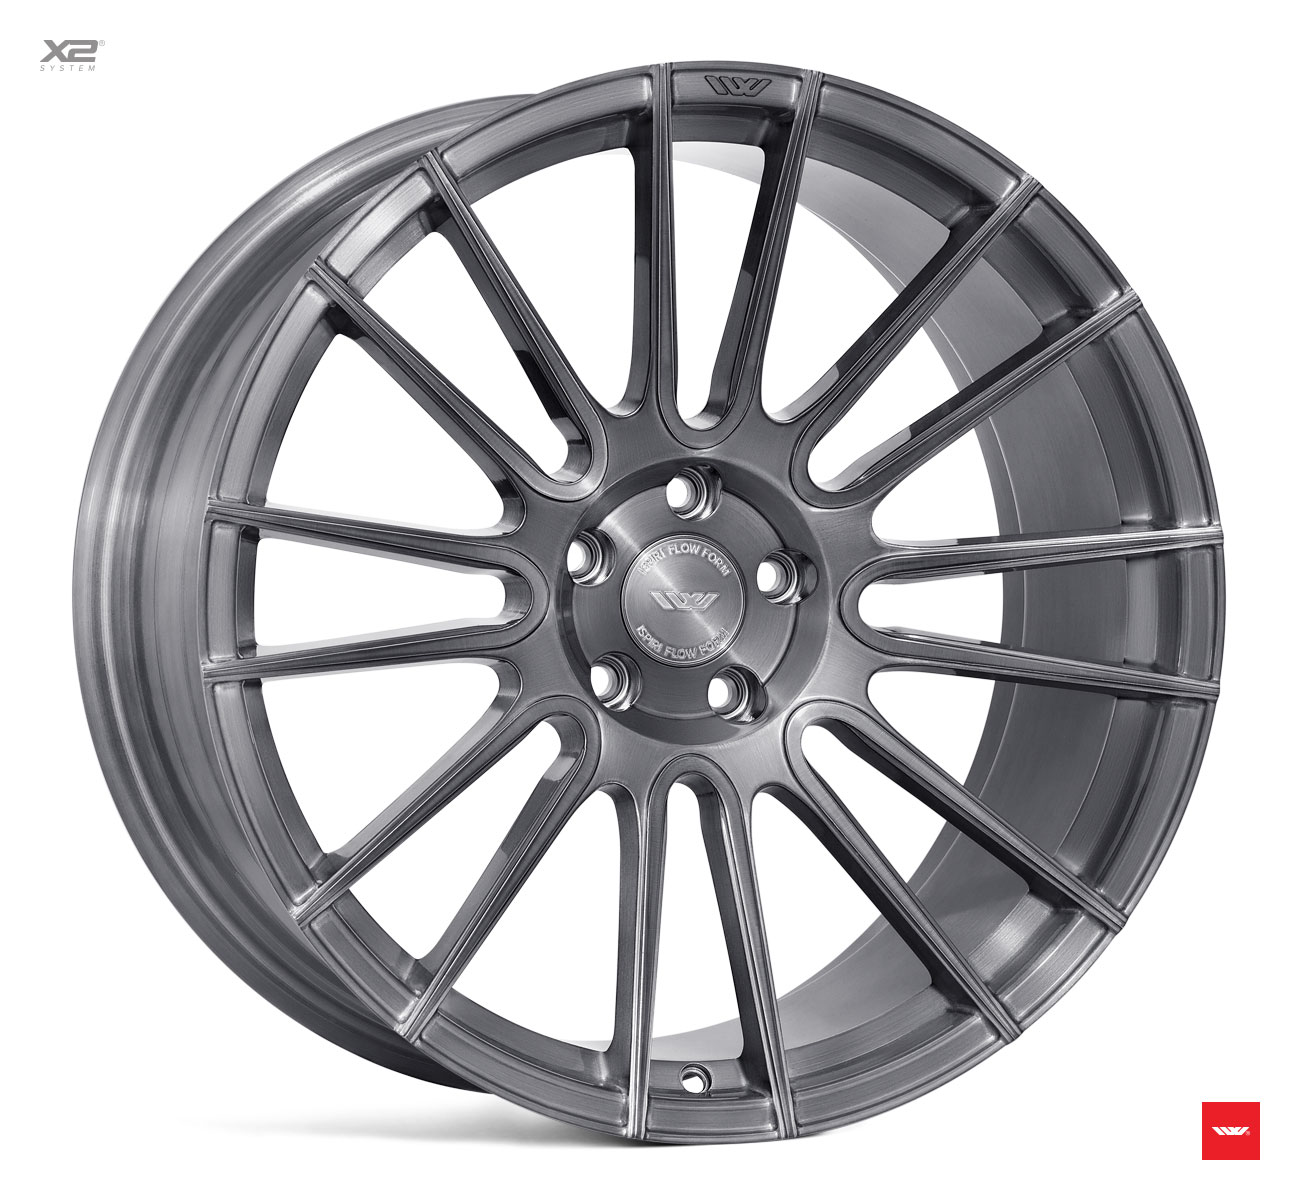 "NEW 20"" ISPIRI FFR8 8-TWIN CURVED SPOKE ALLOY WHEELS IN FULL BRUSHED CARBON TITANIUM, WIDER 10"" REAR"